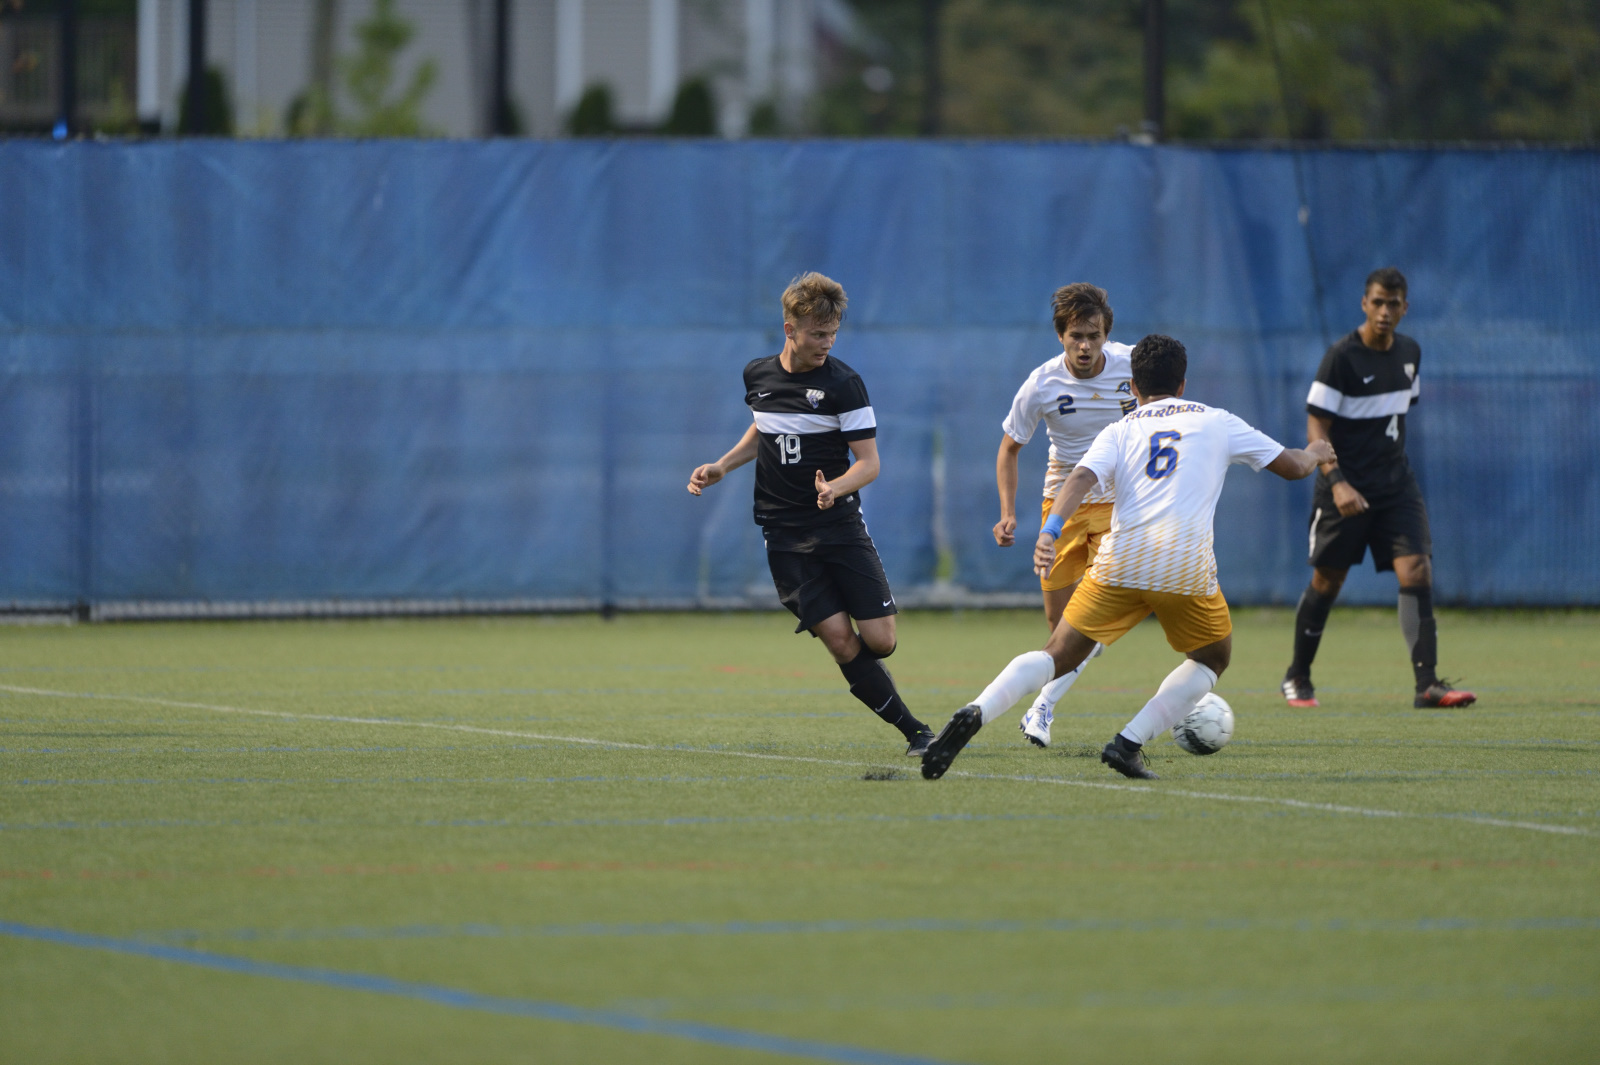 Purple Knights Fall To Southern Connecticut State In UB Men's Soccer Classic Tilt